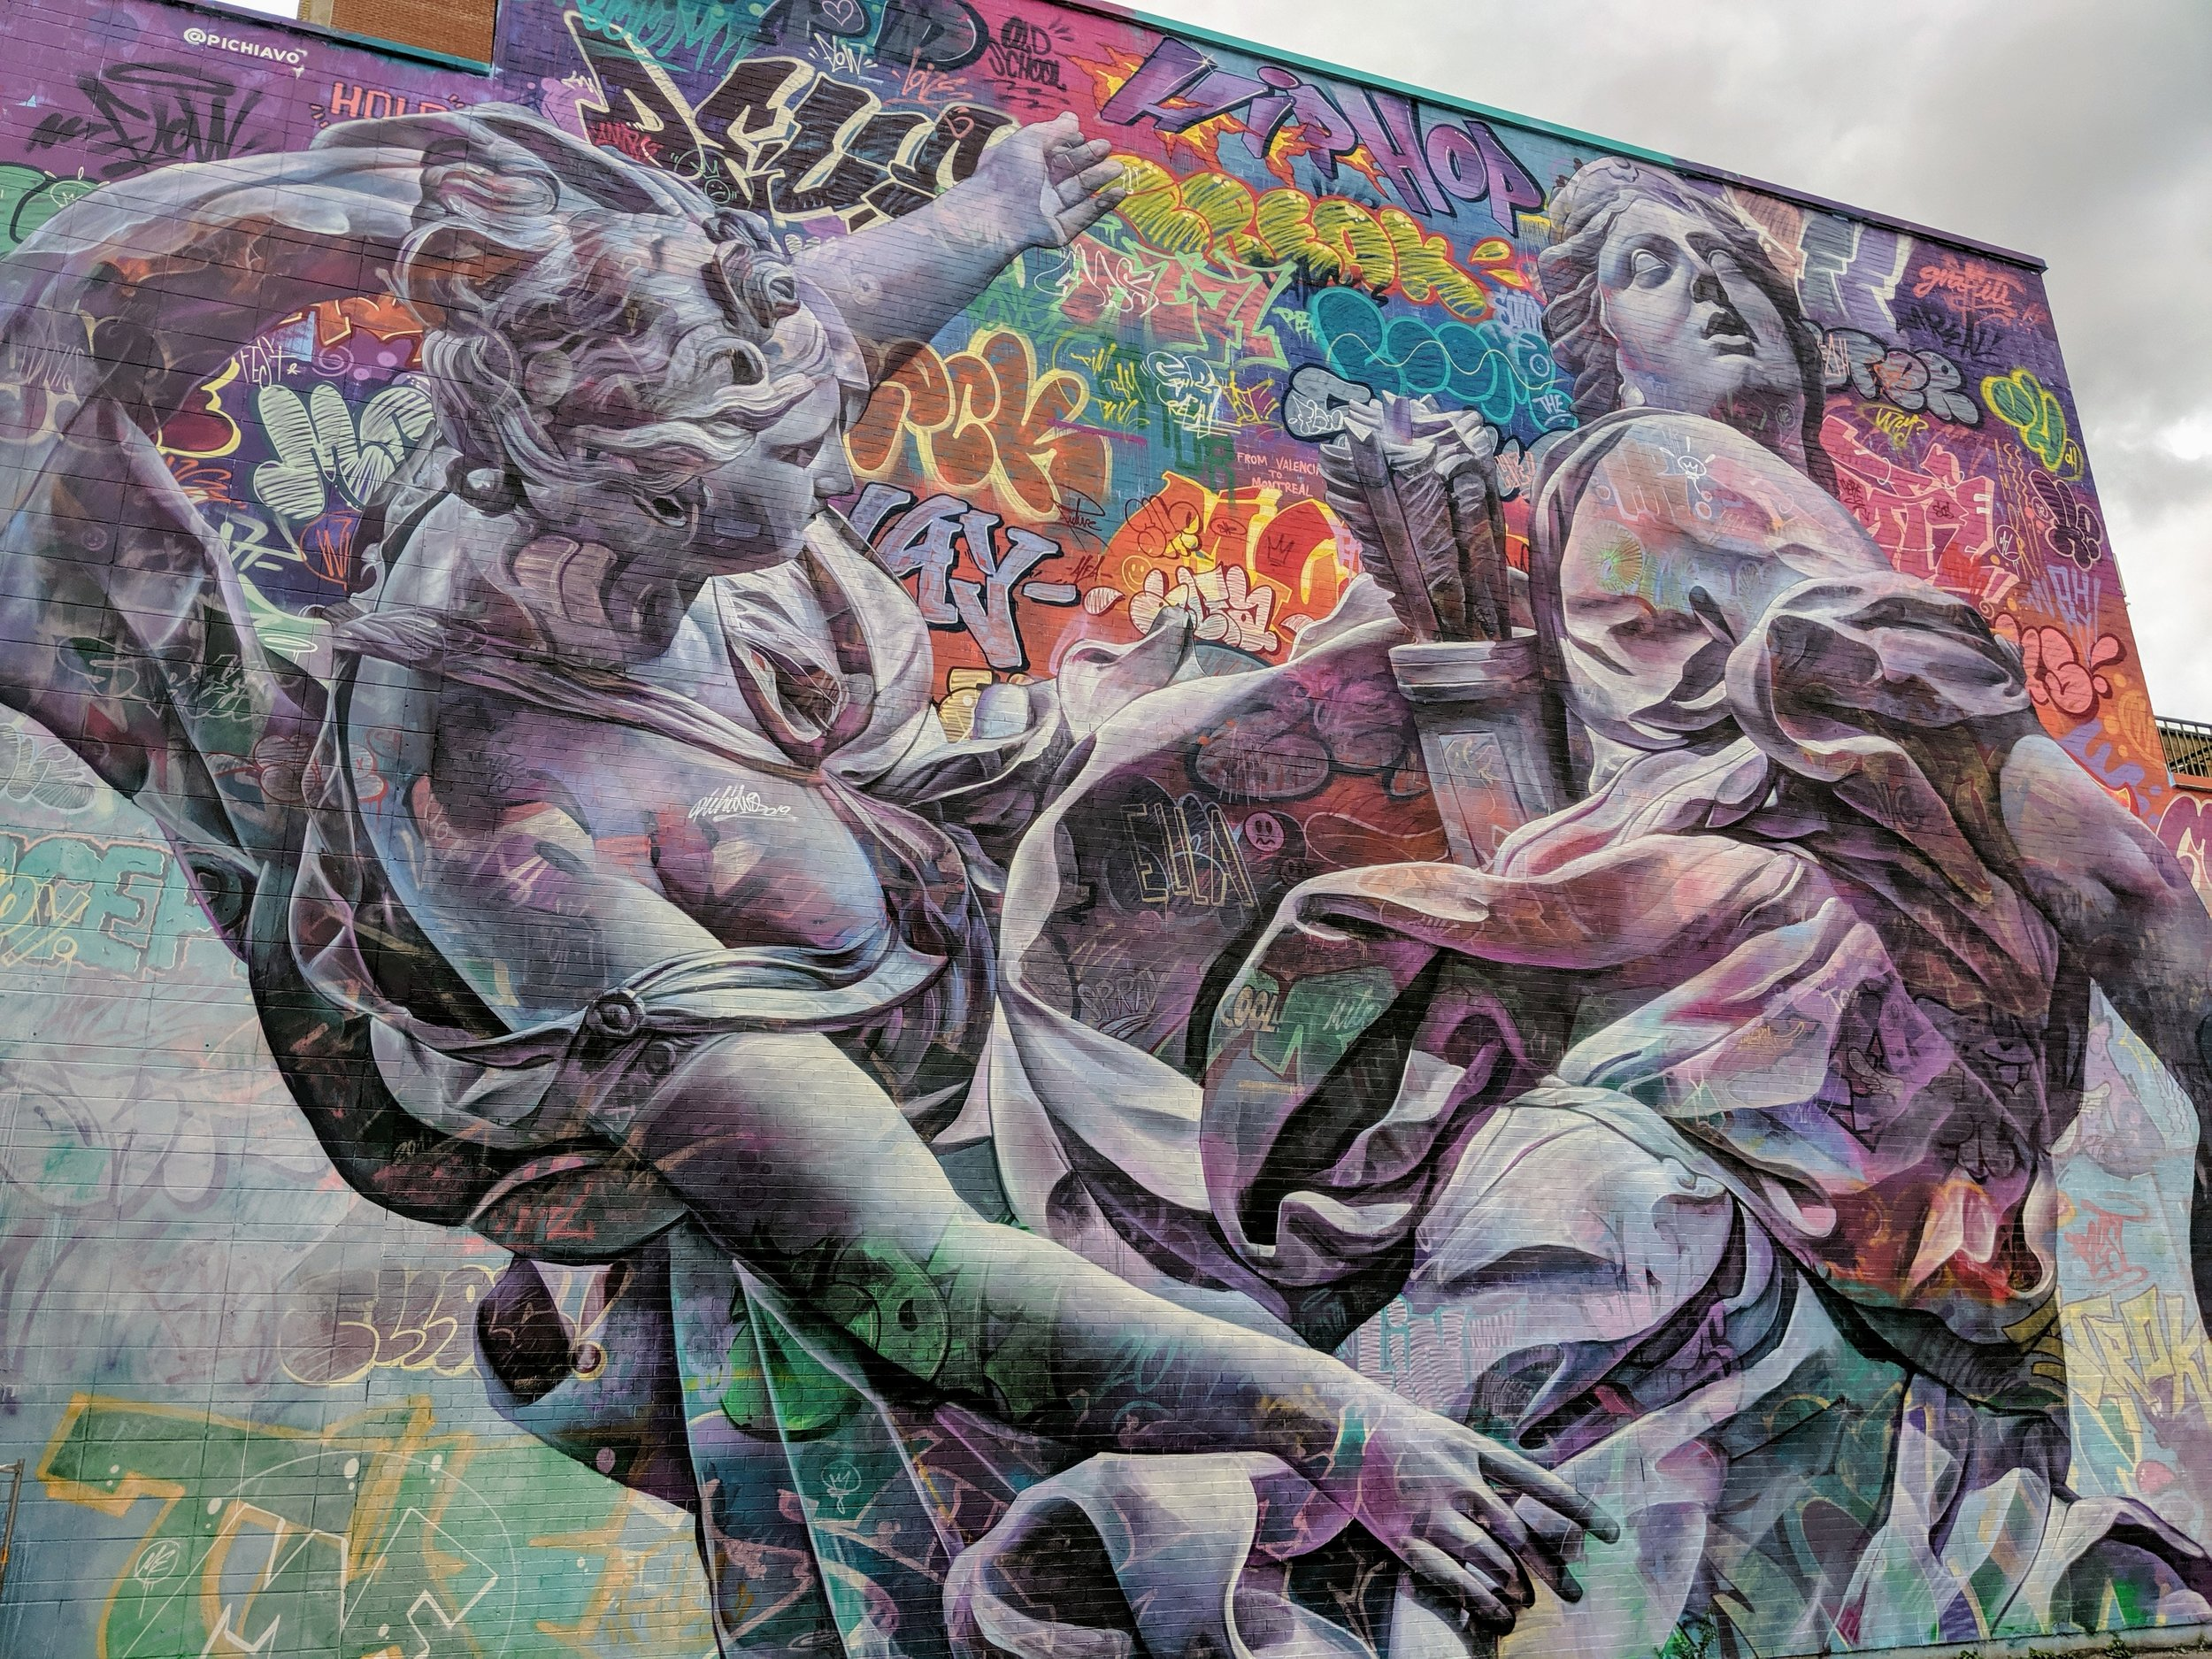 Street art in Montreal portraying 2 angels